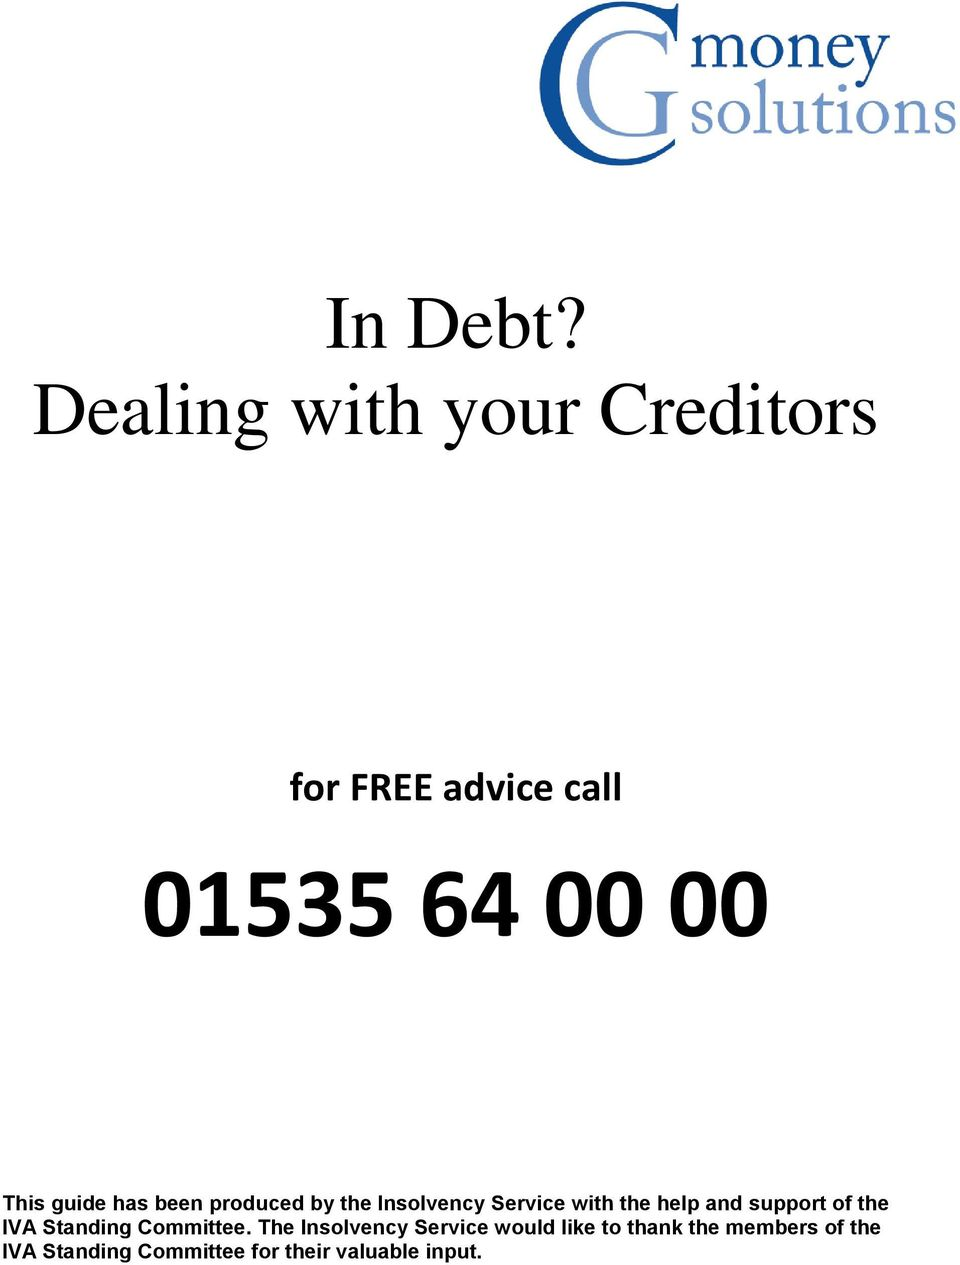 guide has been produced by the Insolvency Service with the help and